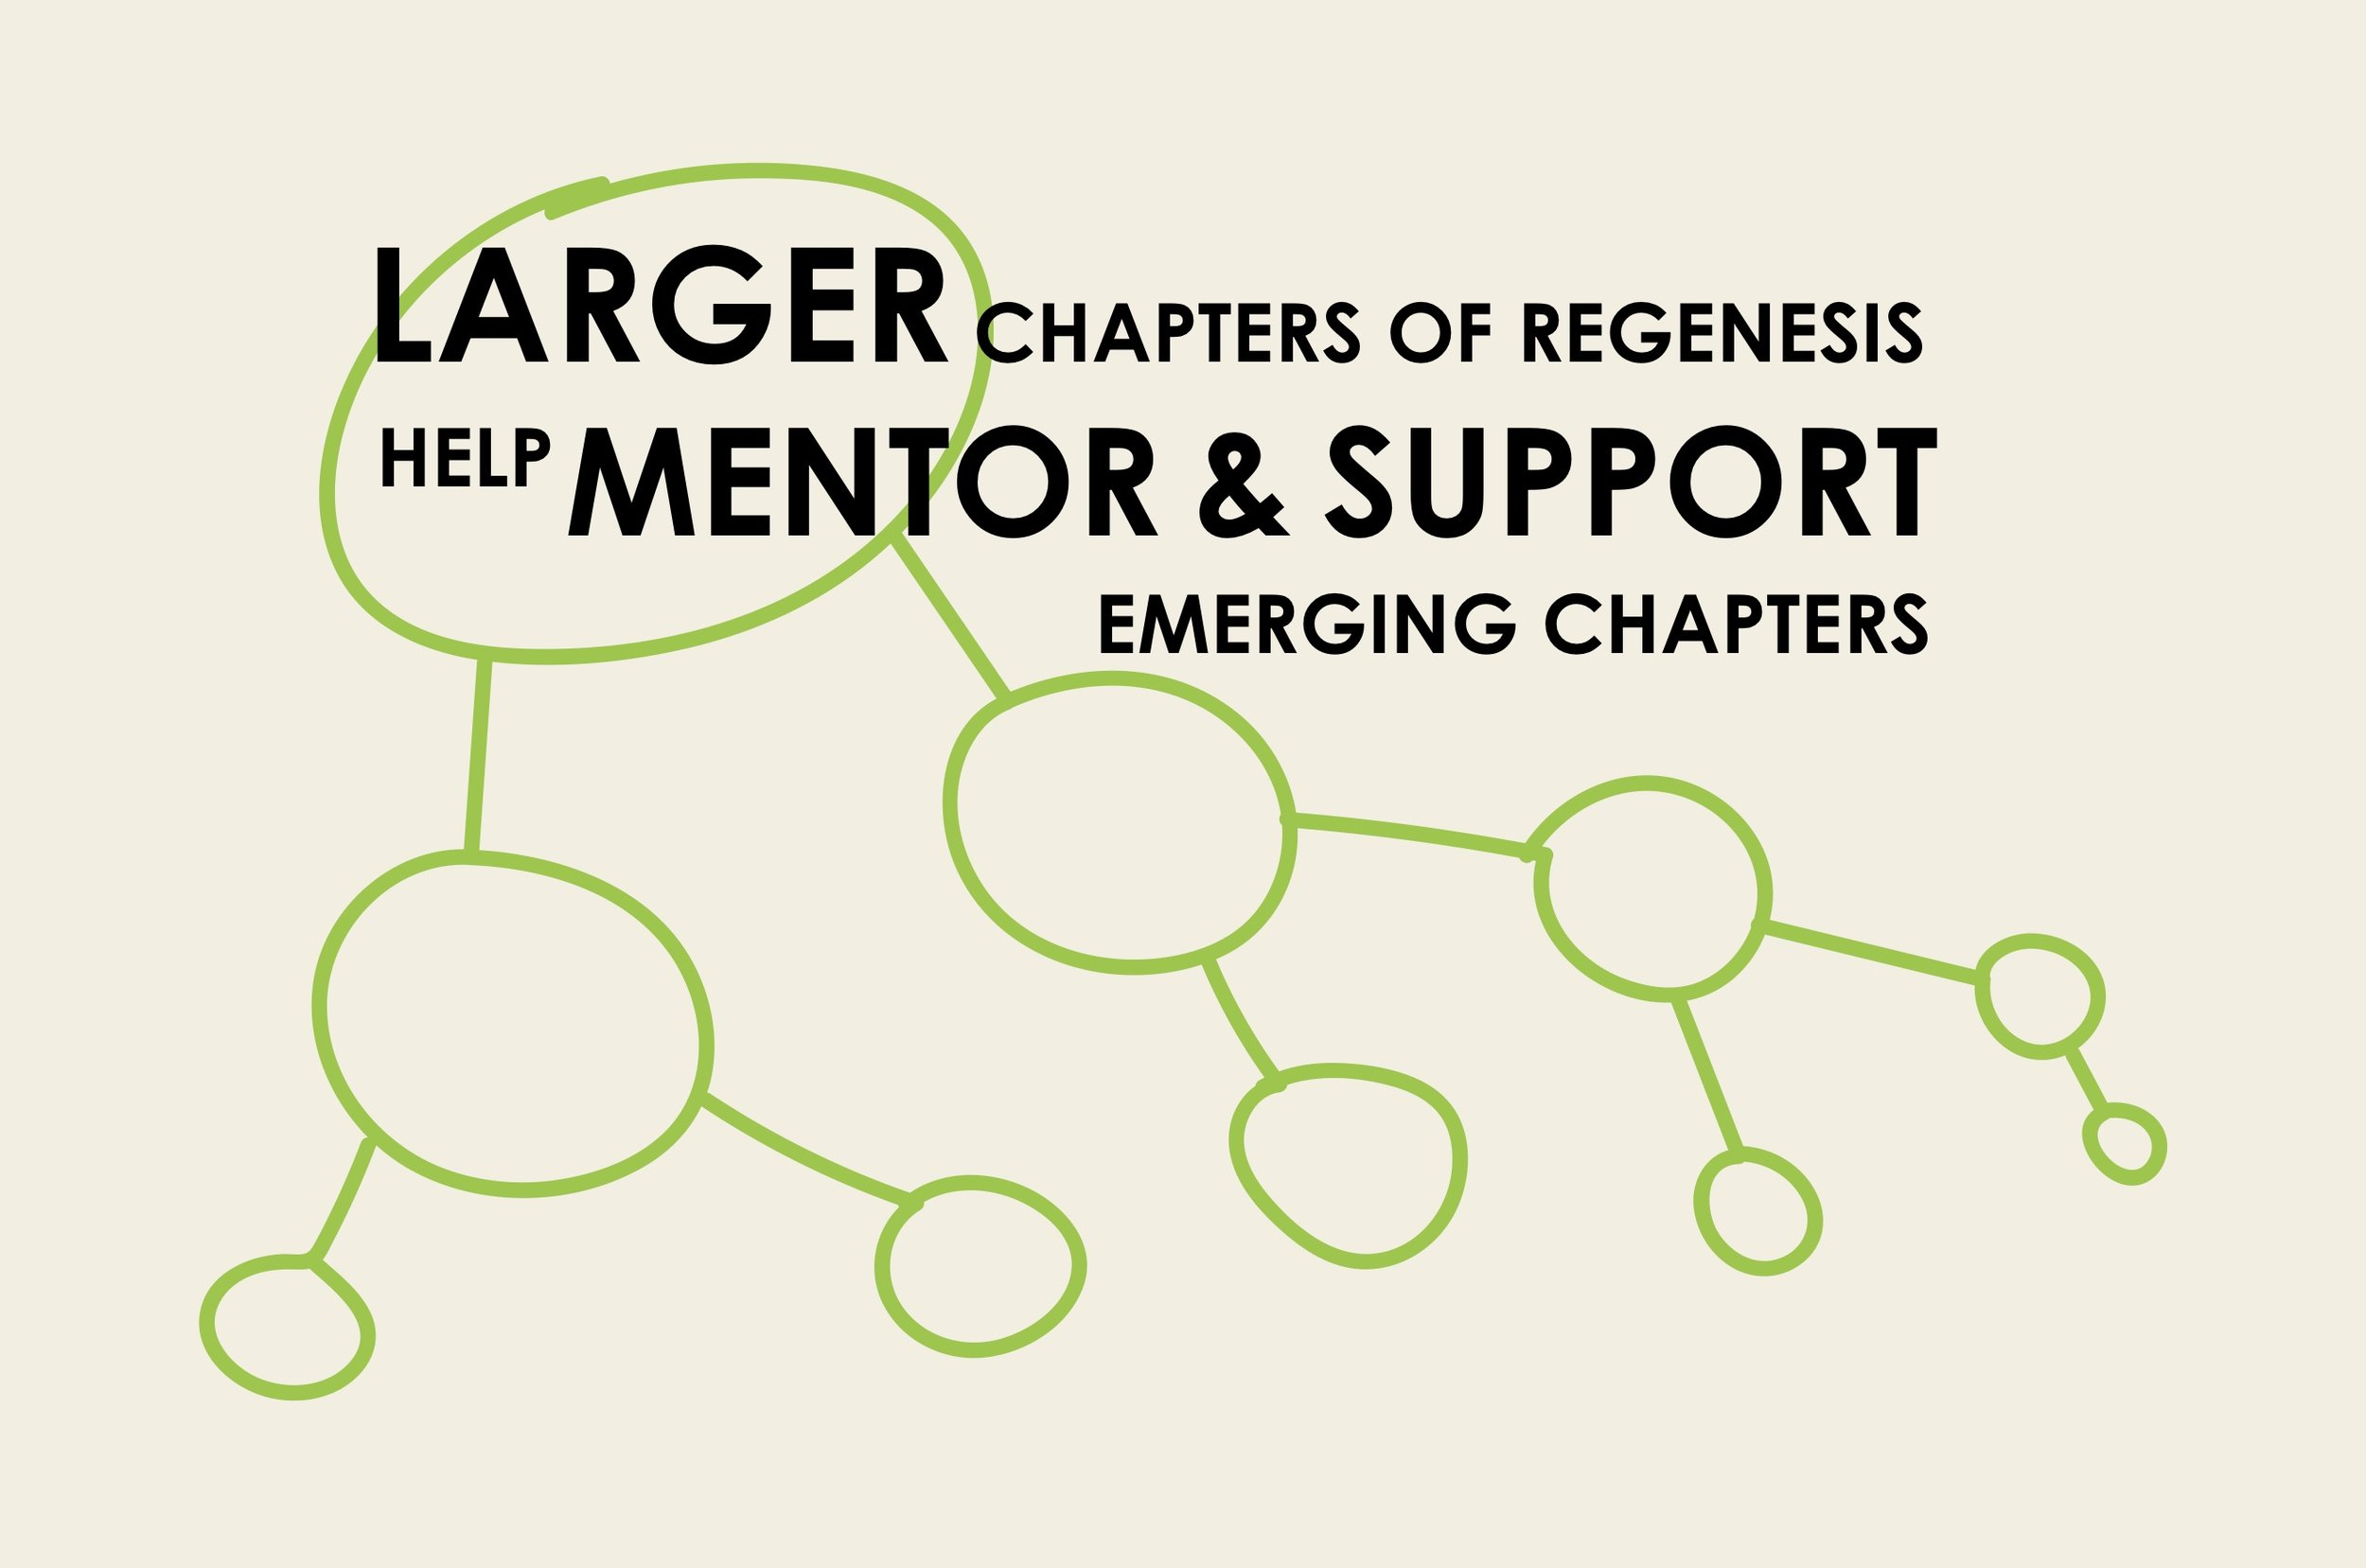 Larger chapters of Regenesis help mentor and support emerging chapters.